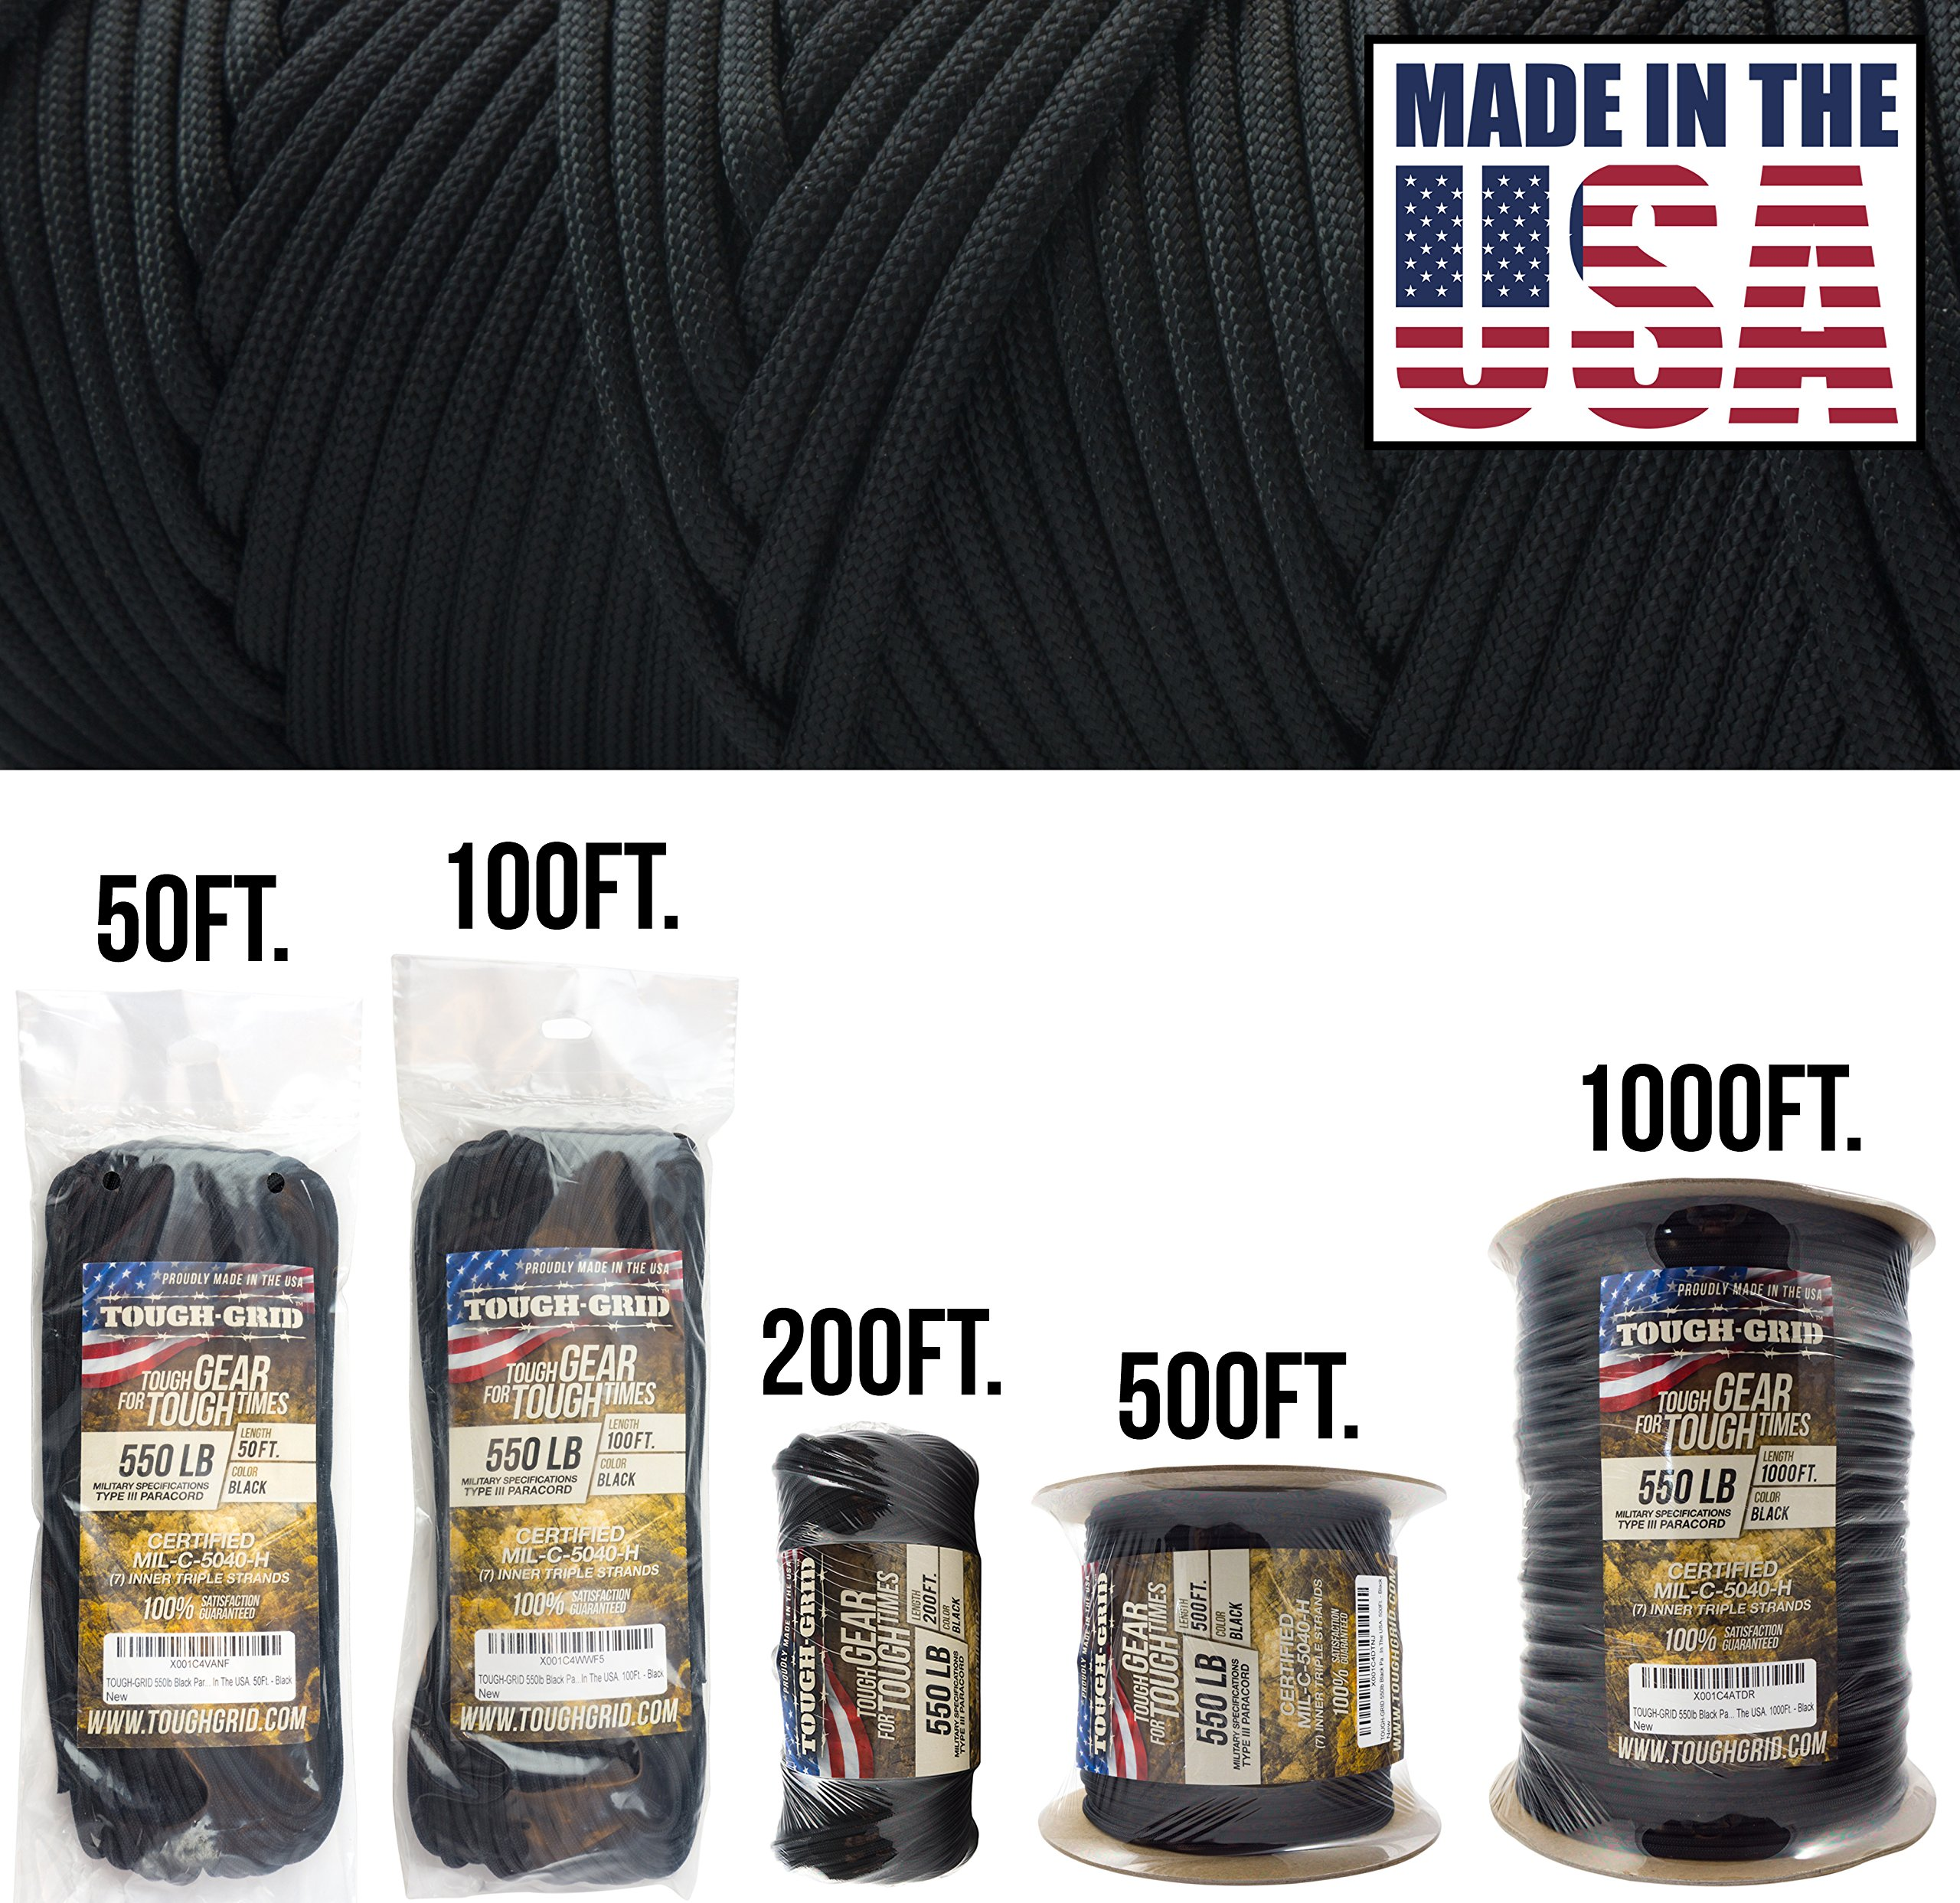 TOUGH-GRID 550lb Black Paracord/Parachute Cord - 100% Nylon Genuine Mil-Spec Type III Paracord Used by The US Military - Great for Bracelets and Lanyards - Made in The USA. 50Ft. - Black by TOUGH-GRID (Image #1)